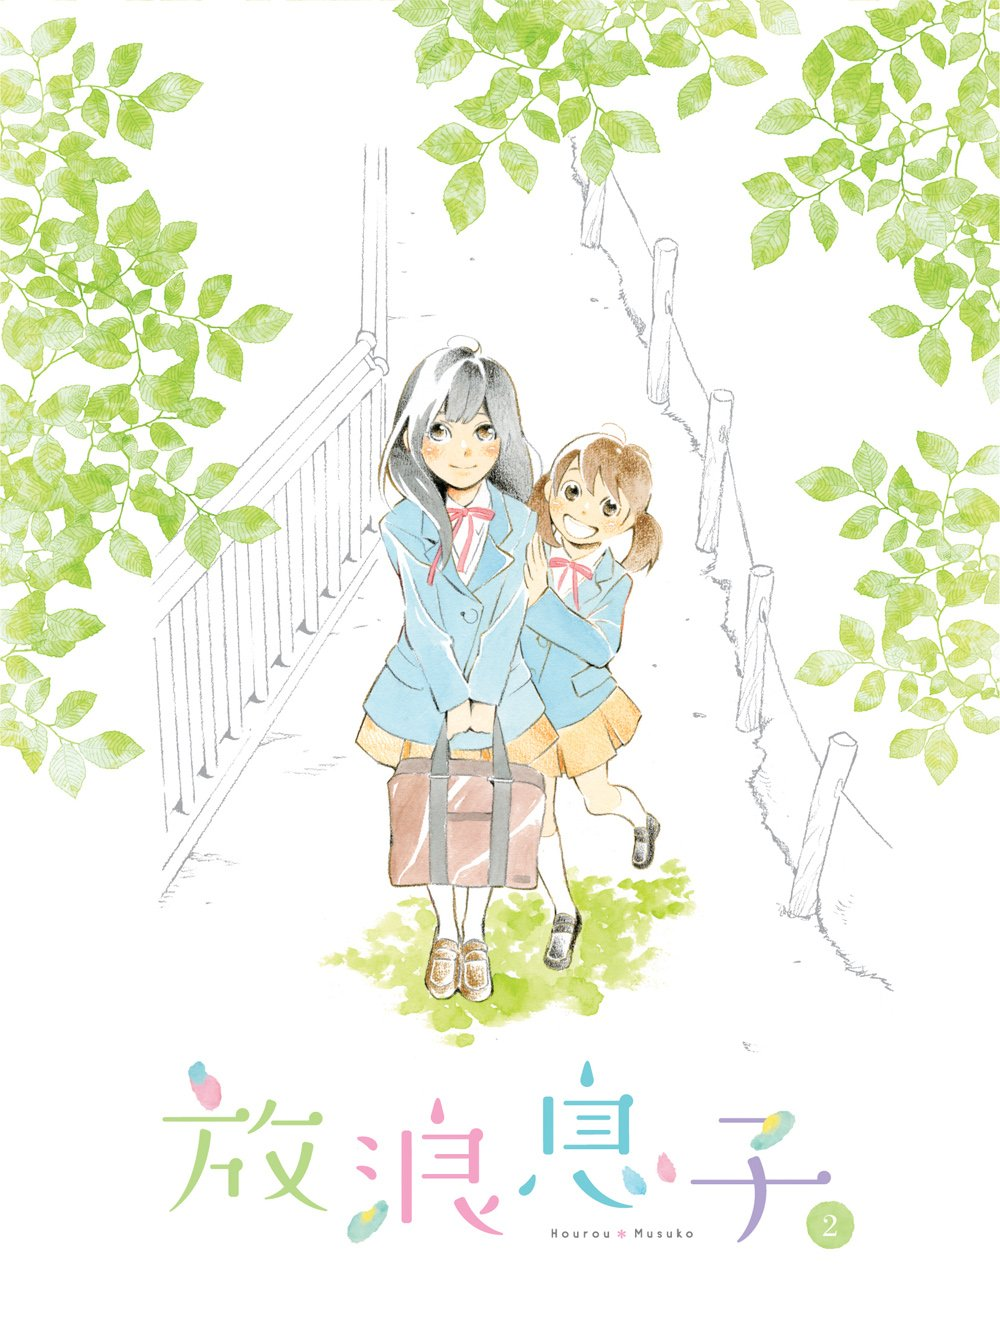 Visuel du 2nd volume de Hourou Musuko